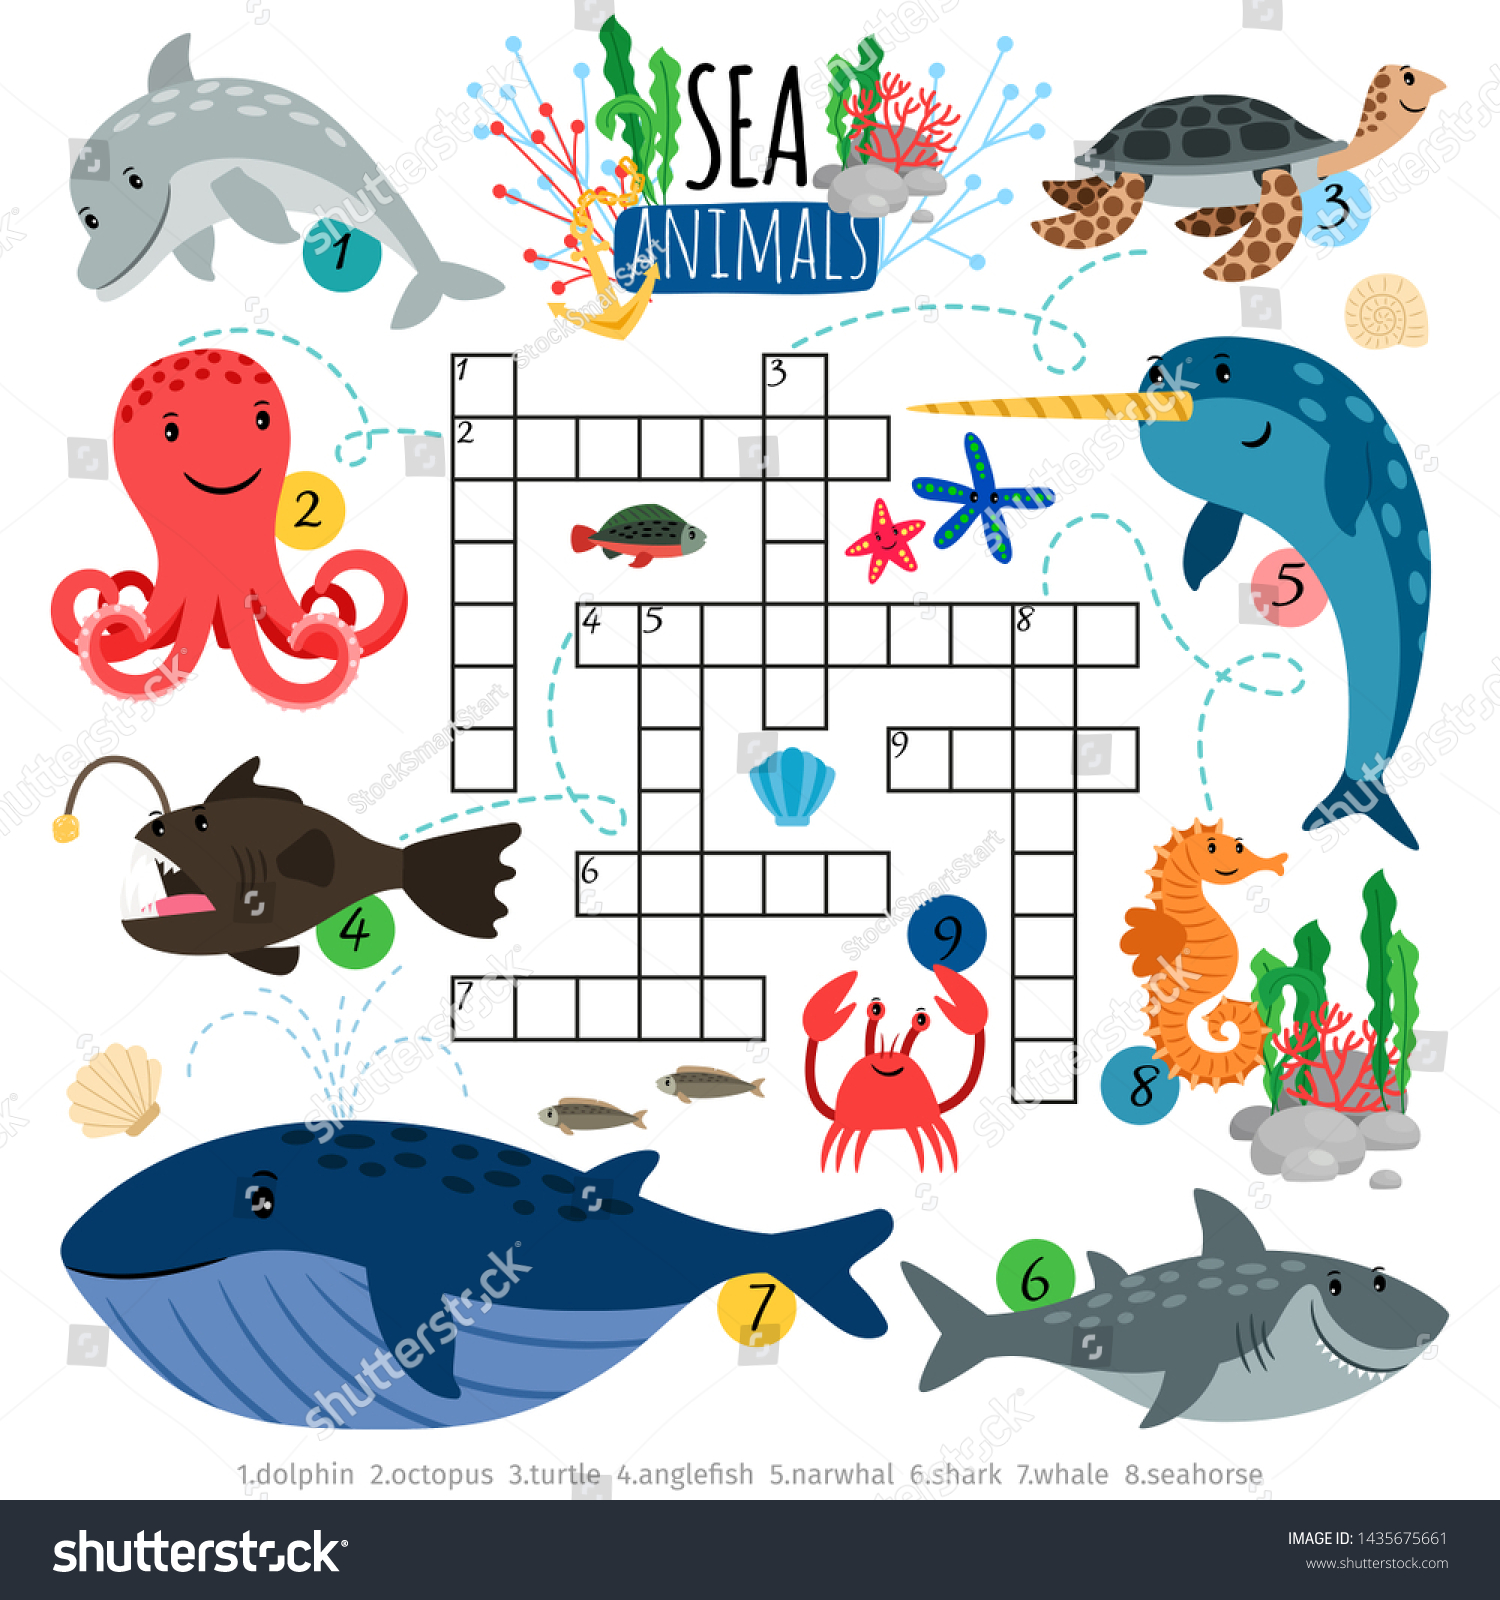 Sea Crossword Ocean Animals Crosswords Game Stock Illustration 1435675661